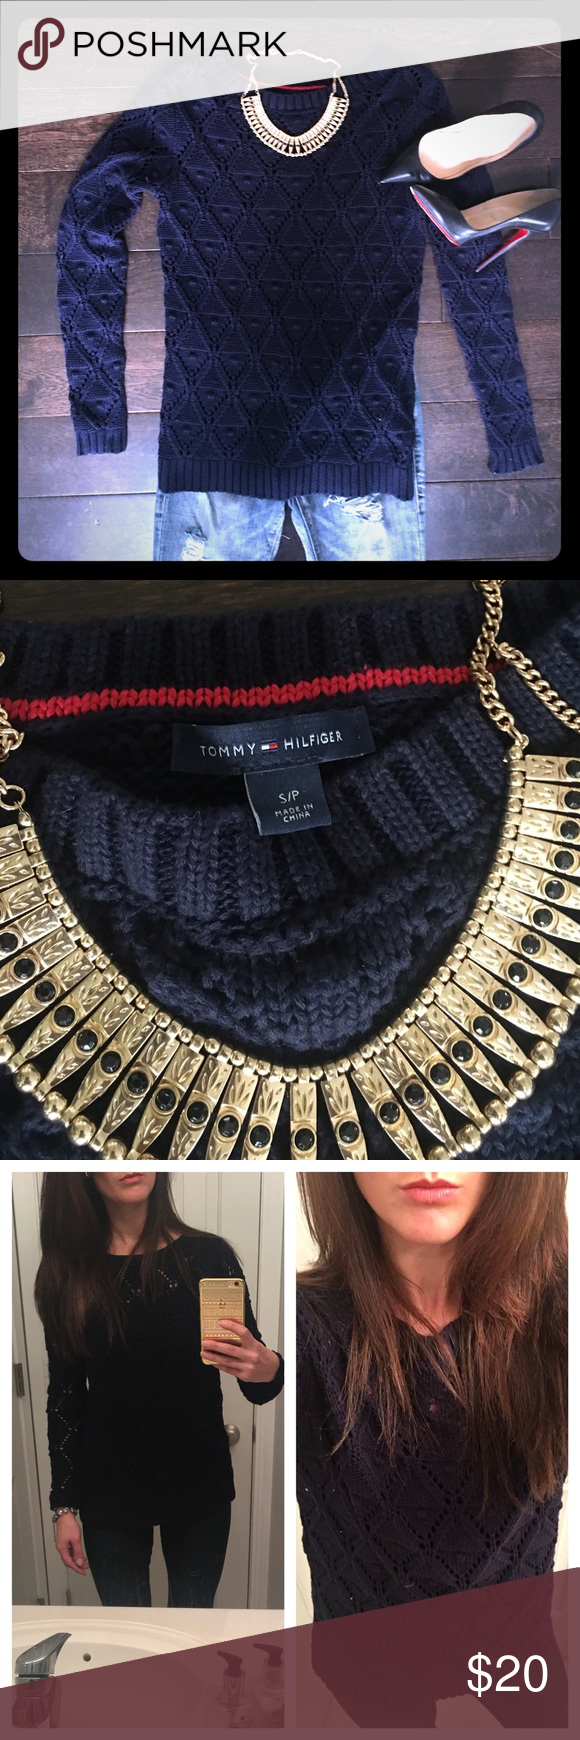 Tommy Hilfiger • Navy Crochet Sweater Tommy Hilfiger • Navy Crochet Sweater.  Worn Once!  Excellent Condition.  Size Small. Tommy Hilfiger Sweaters Crew & Scoop Necks